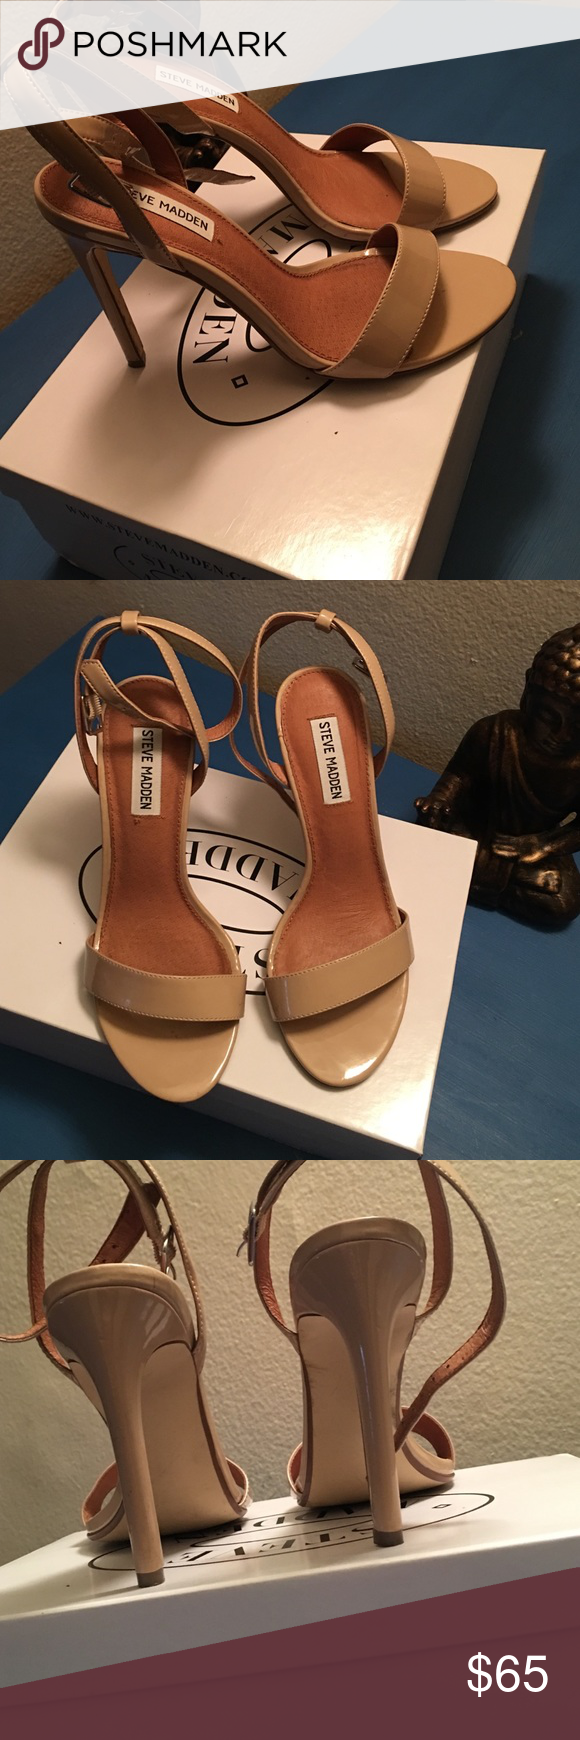 Steve Madden heels Style name: Provence, 4.25 inch heel, color blush nude, size 8, worn once no scuffs brand new. Comes with Steve Madden box. Steve Madden Shoes Heels